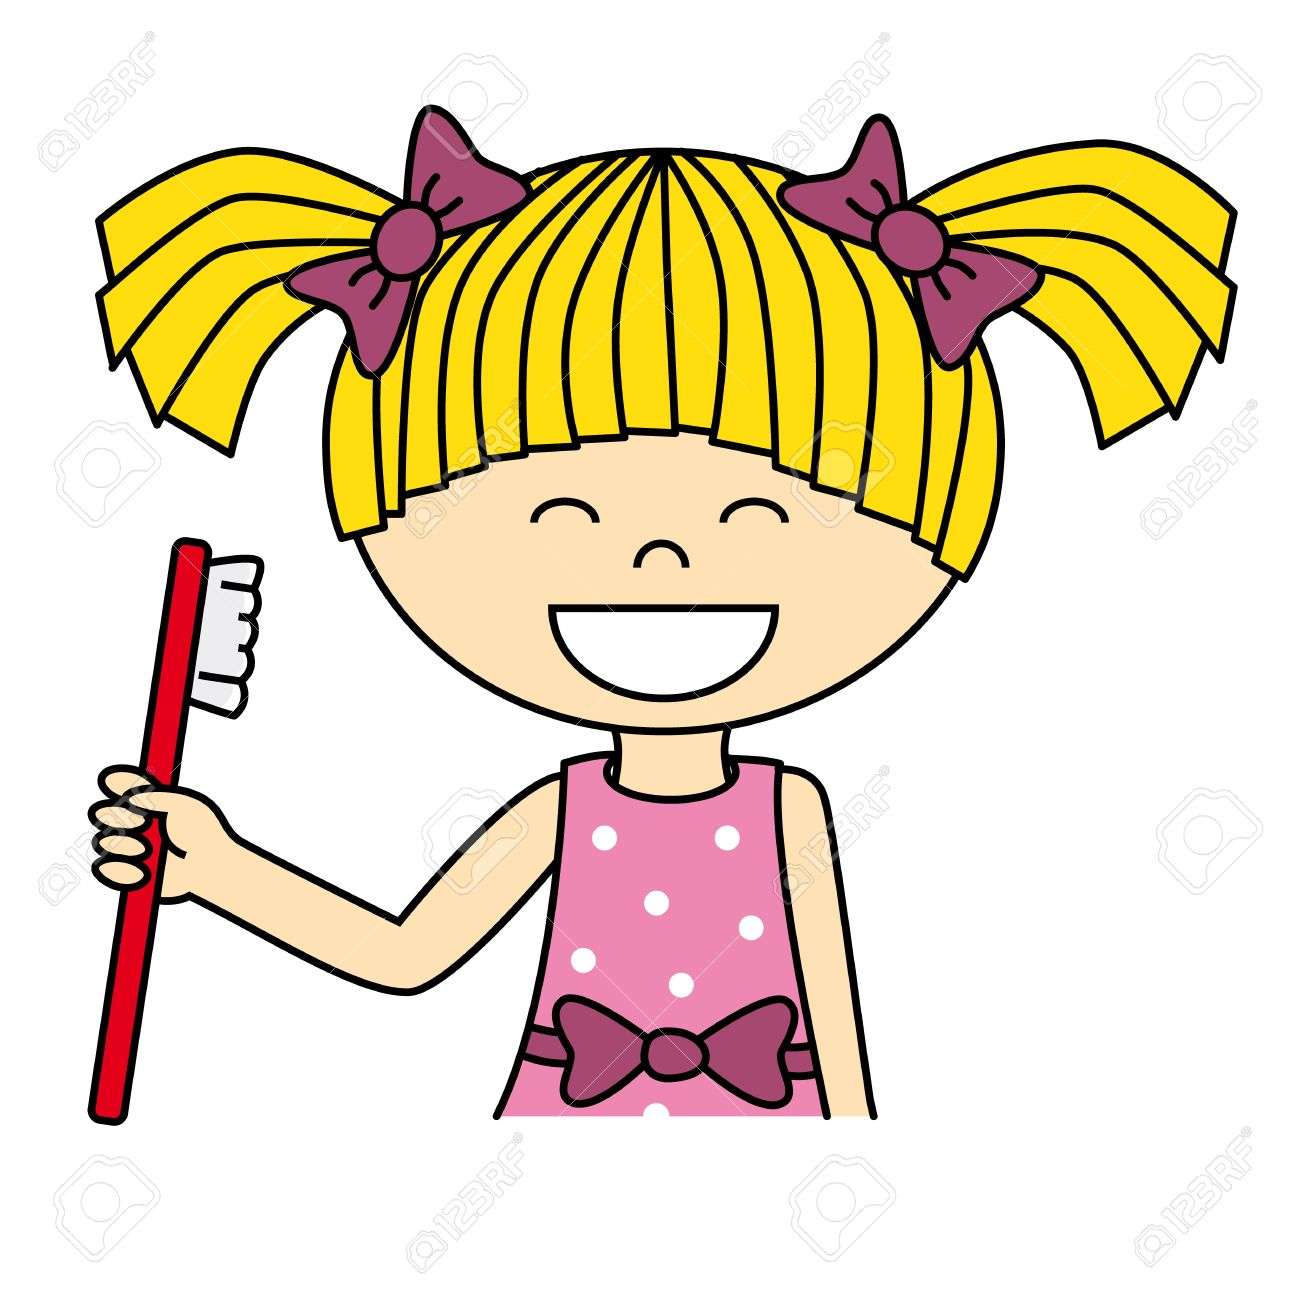 girl brushing her teeth royalty free cliparts vectors and stock rh 123rf com brush your teeth clipart brush my teeth clipart